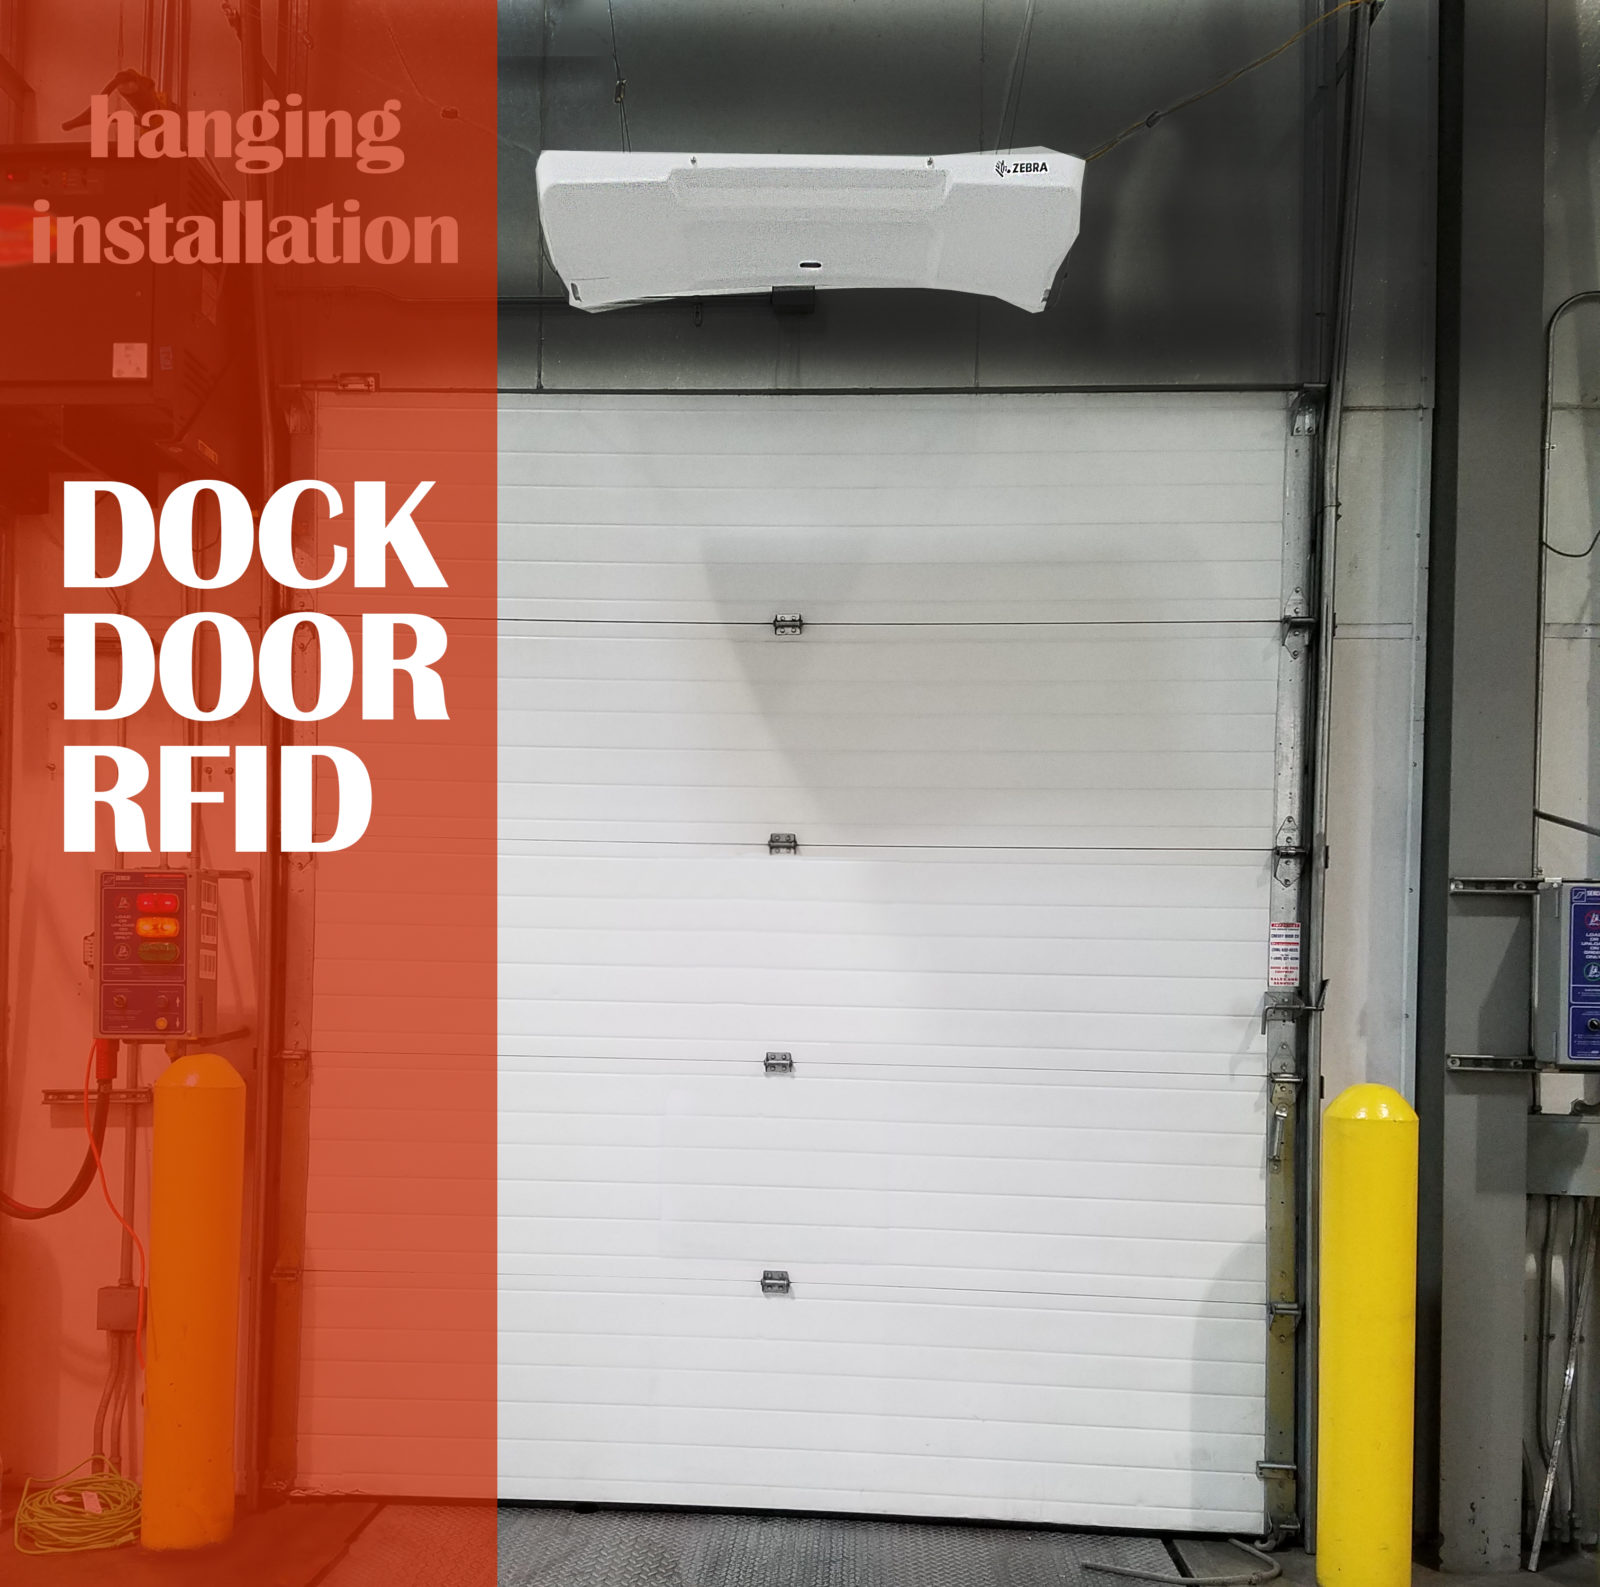 Door Door Installation with reader overhead. Shipment Verification and monitoring